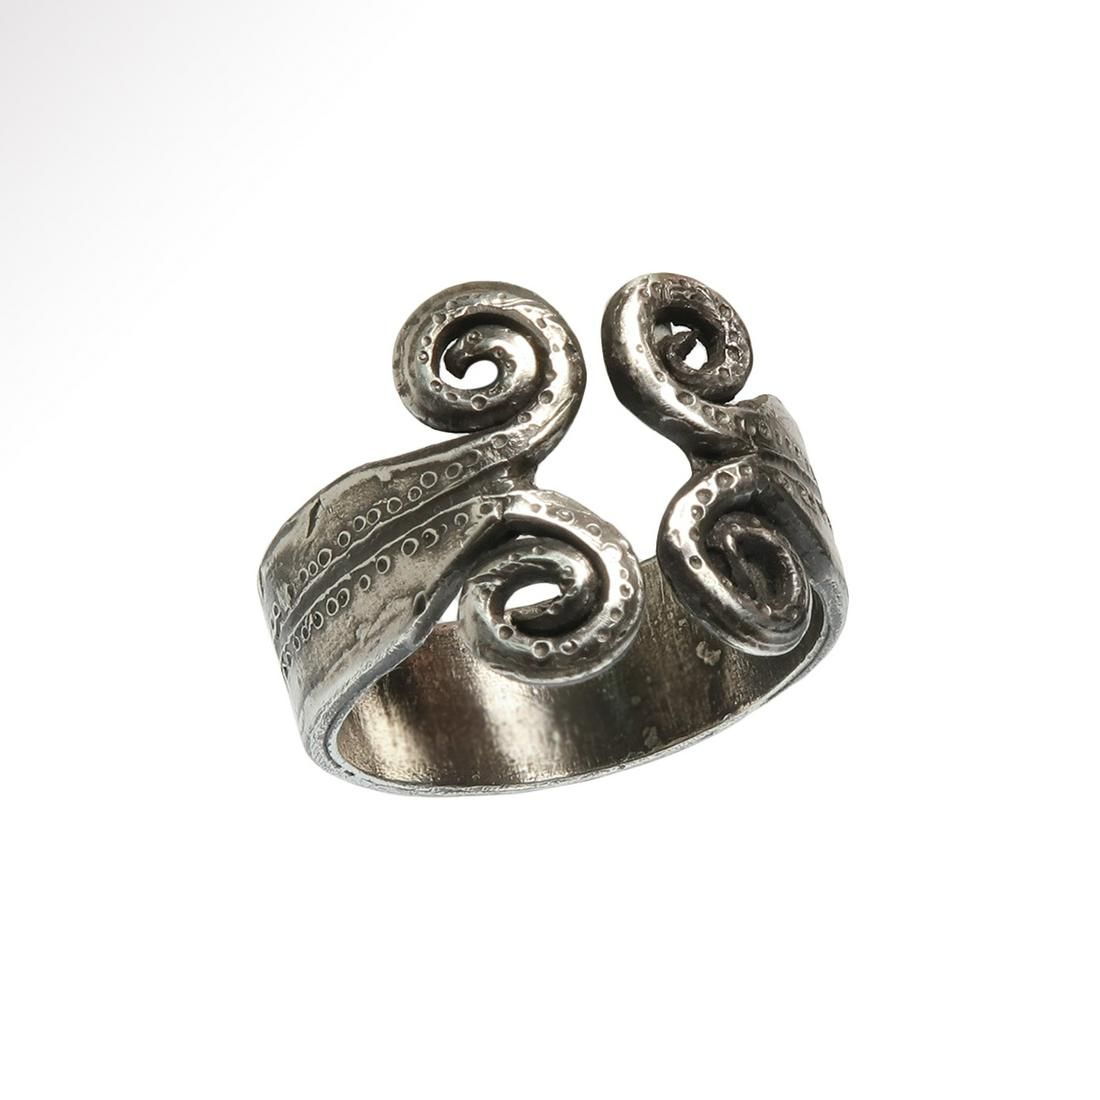 Celtic Silver Ring with Spirals, c. 1000-600 B.C.